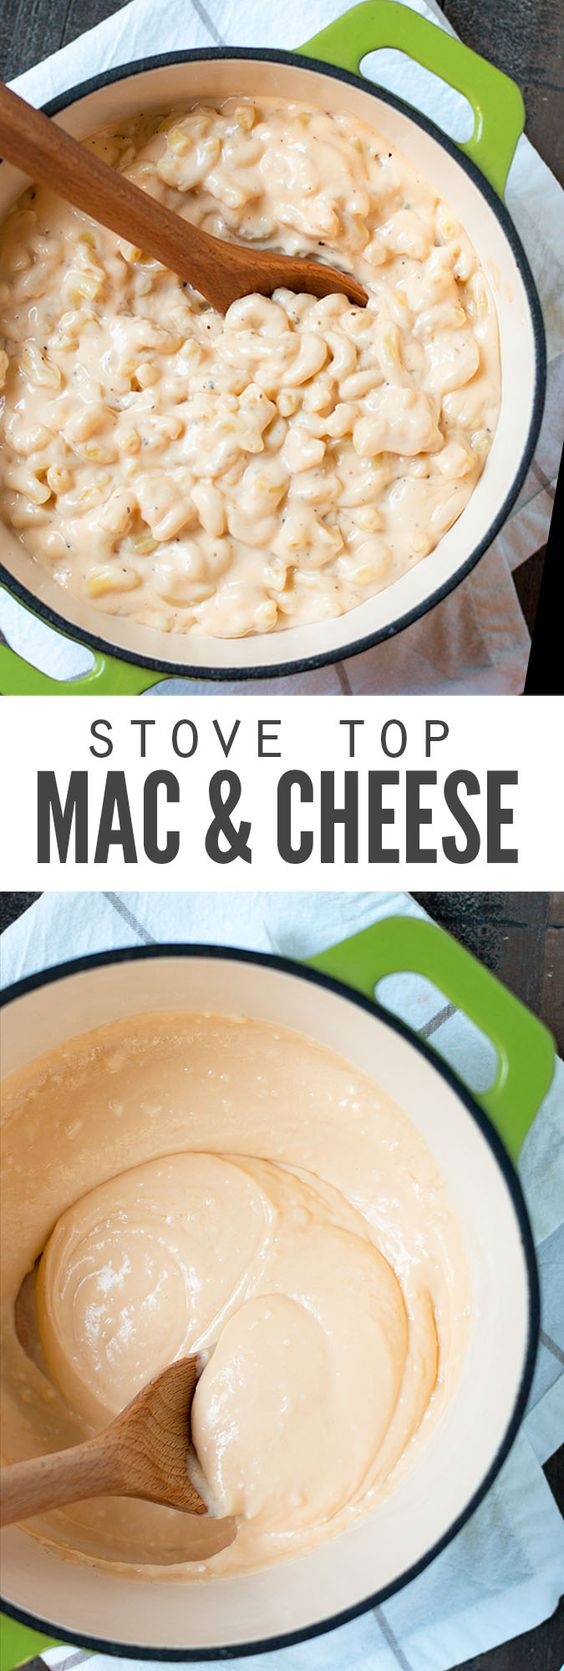 The best homemade mac and cheese just like your grandma would make, ready in less than 15 minutes and made from scratch with real ingredients. When you think of mac and cheese, THIS is what you crave! :: DontWastetheCrumbs.com